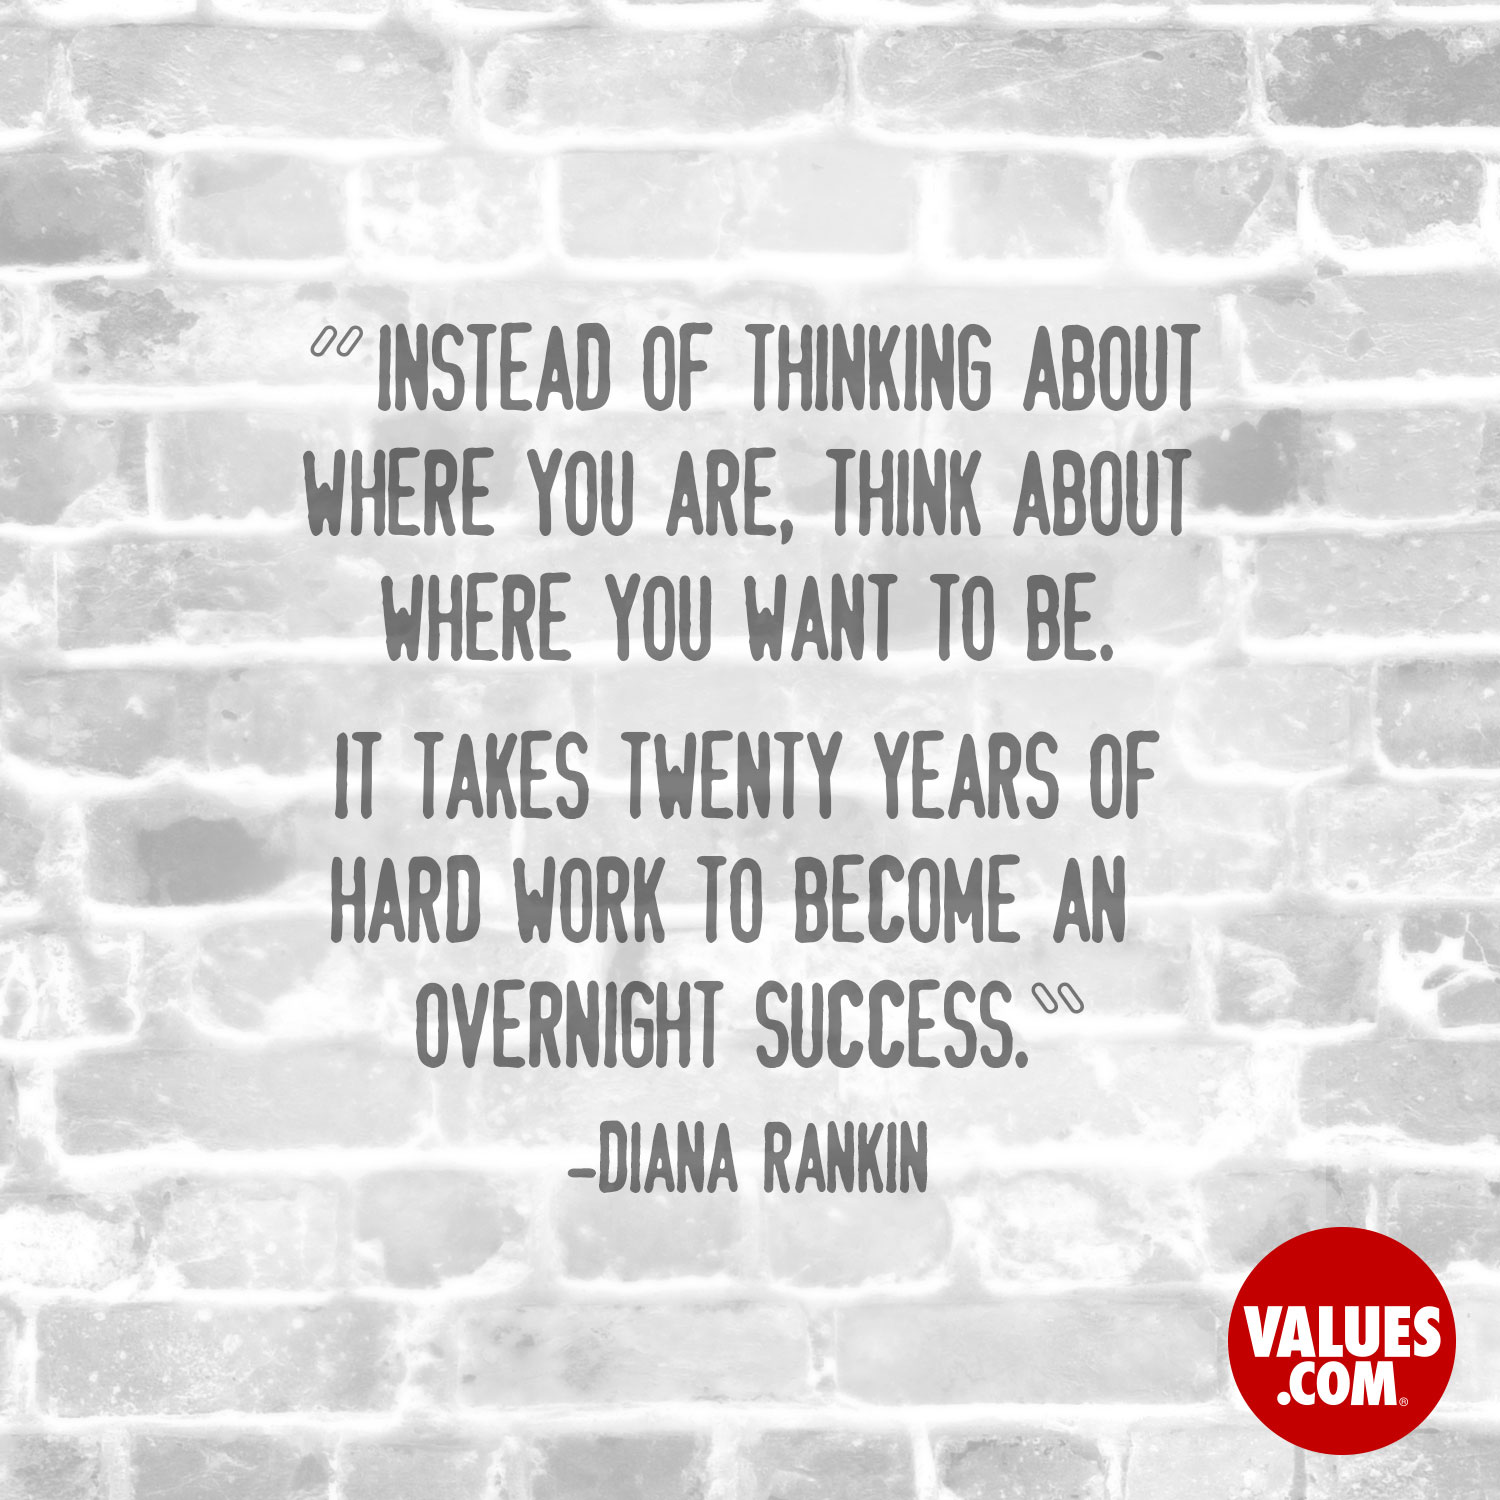 Instead of thinking about where you are, think about where you want to be. It takes twenty years of hard work to become an overnight success. —Diana Rankin